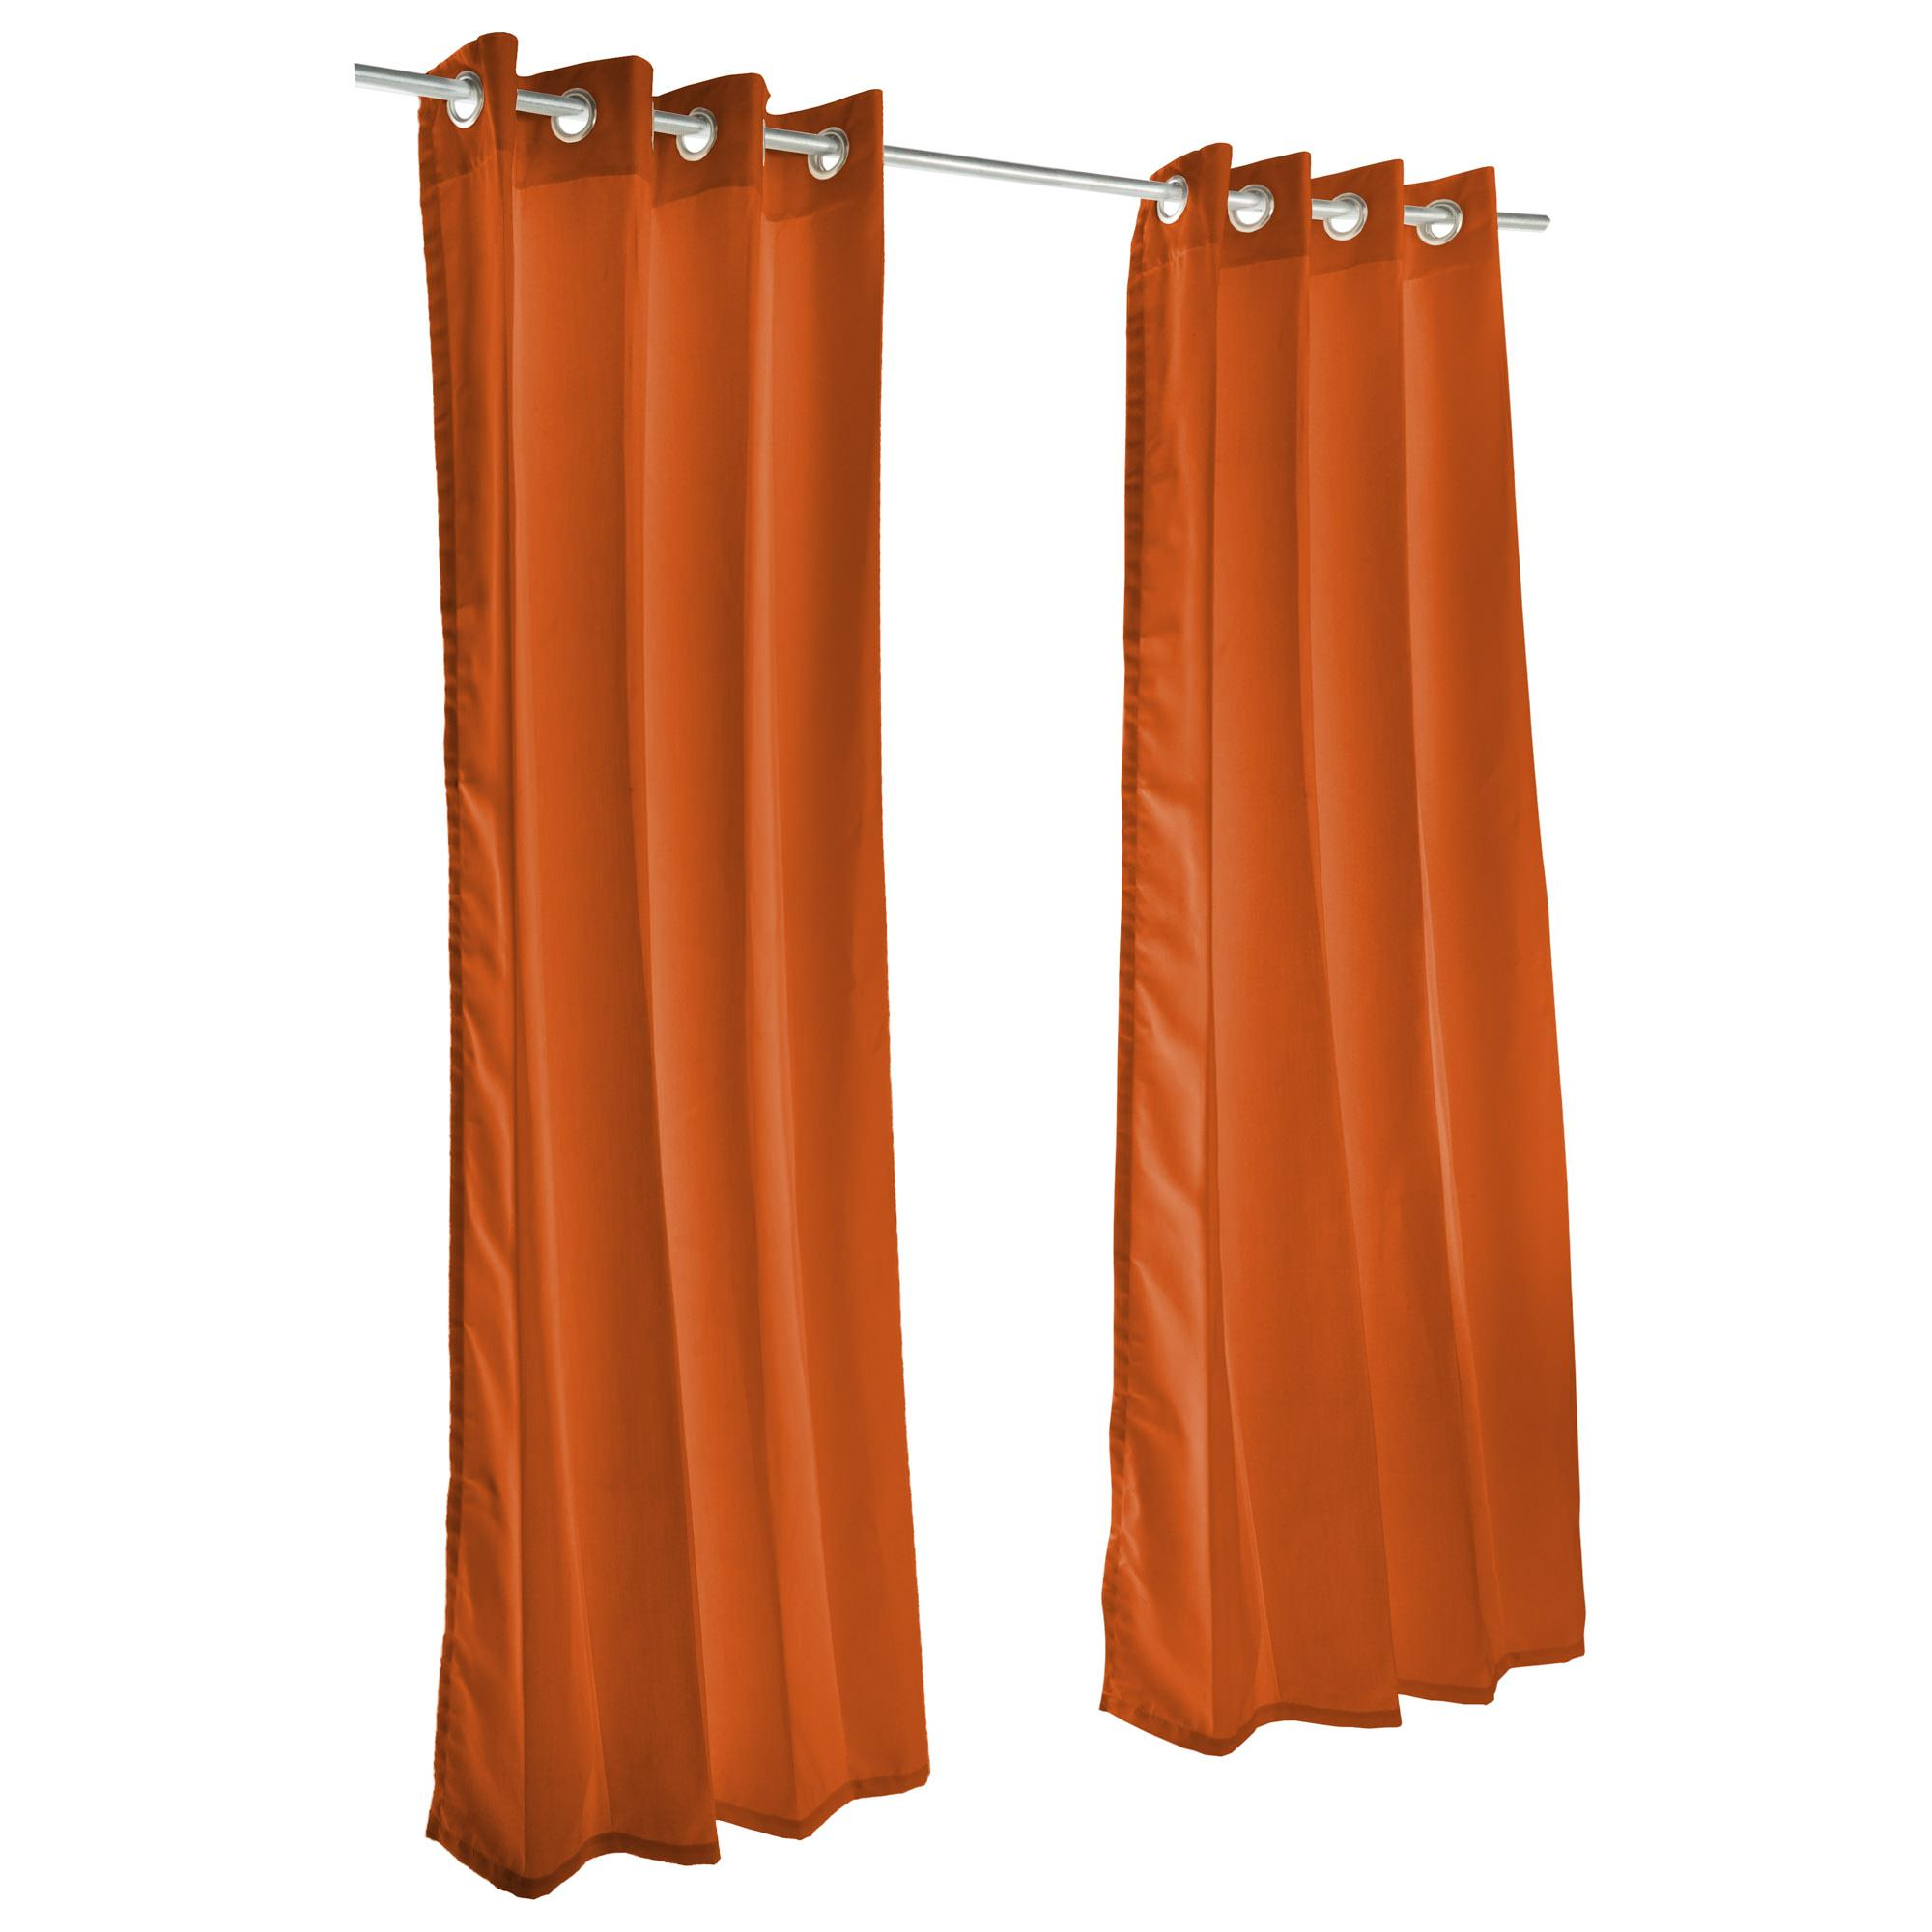 Rust Sunbrella Nickel Grommeted Outdoor Curtain by Essentials by DFO